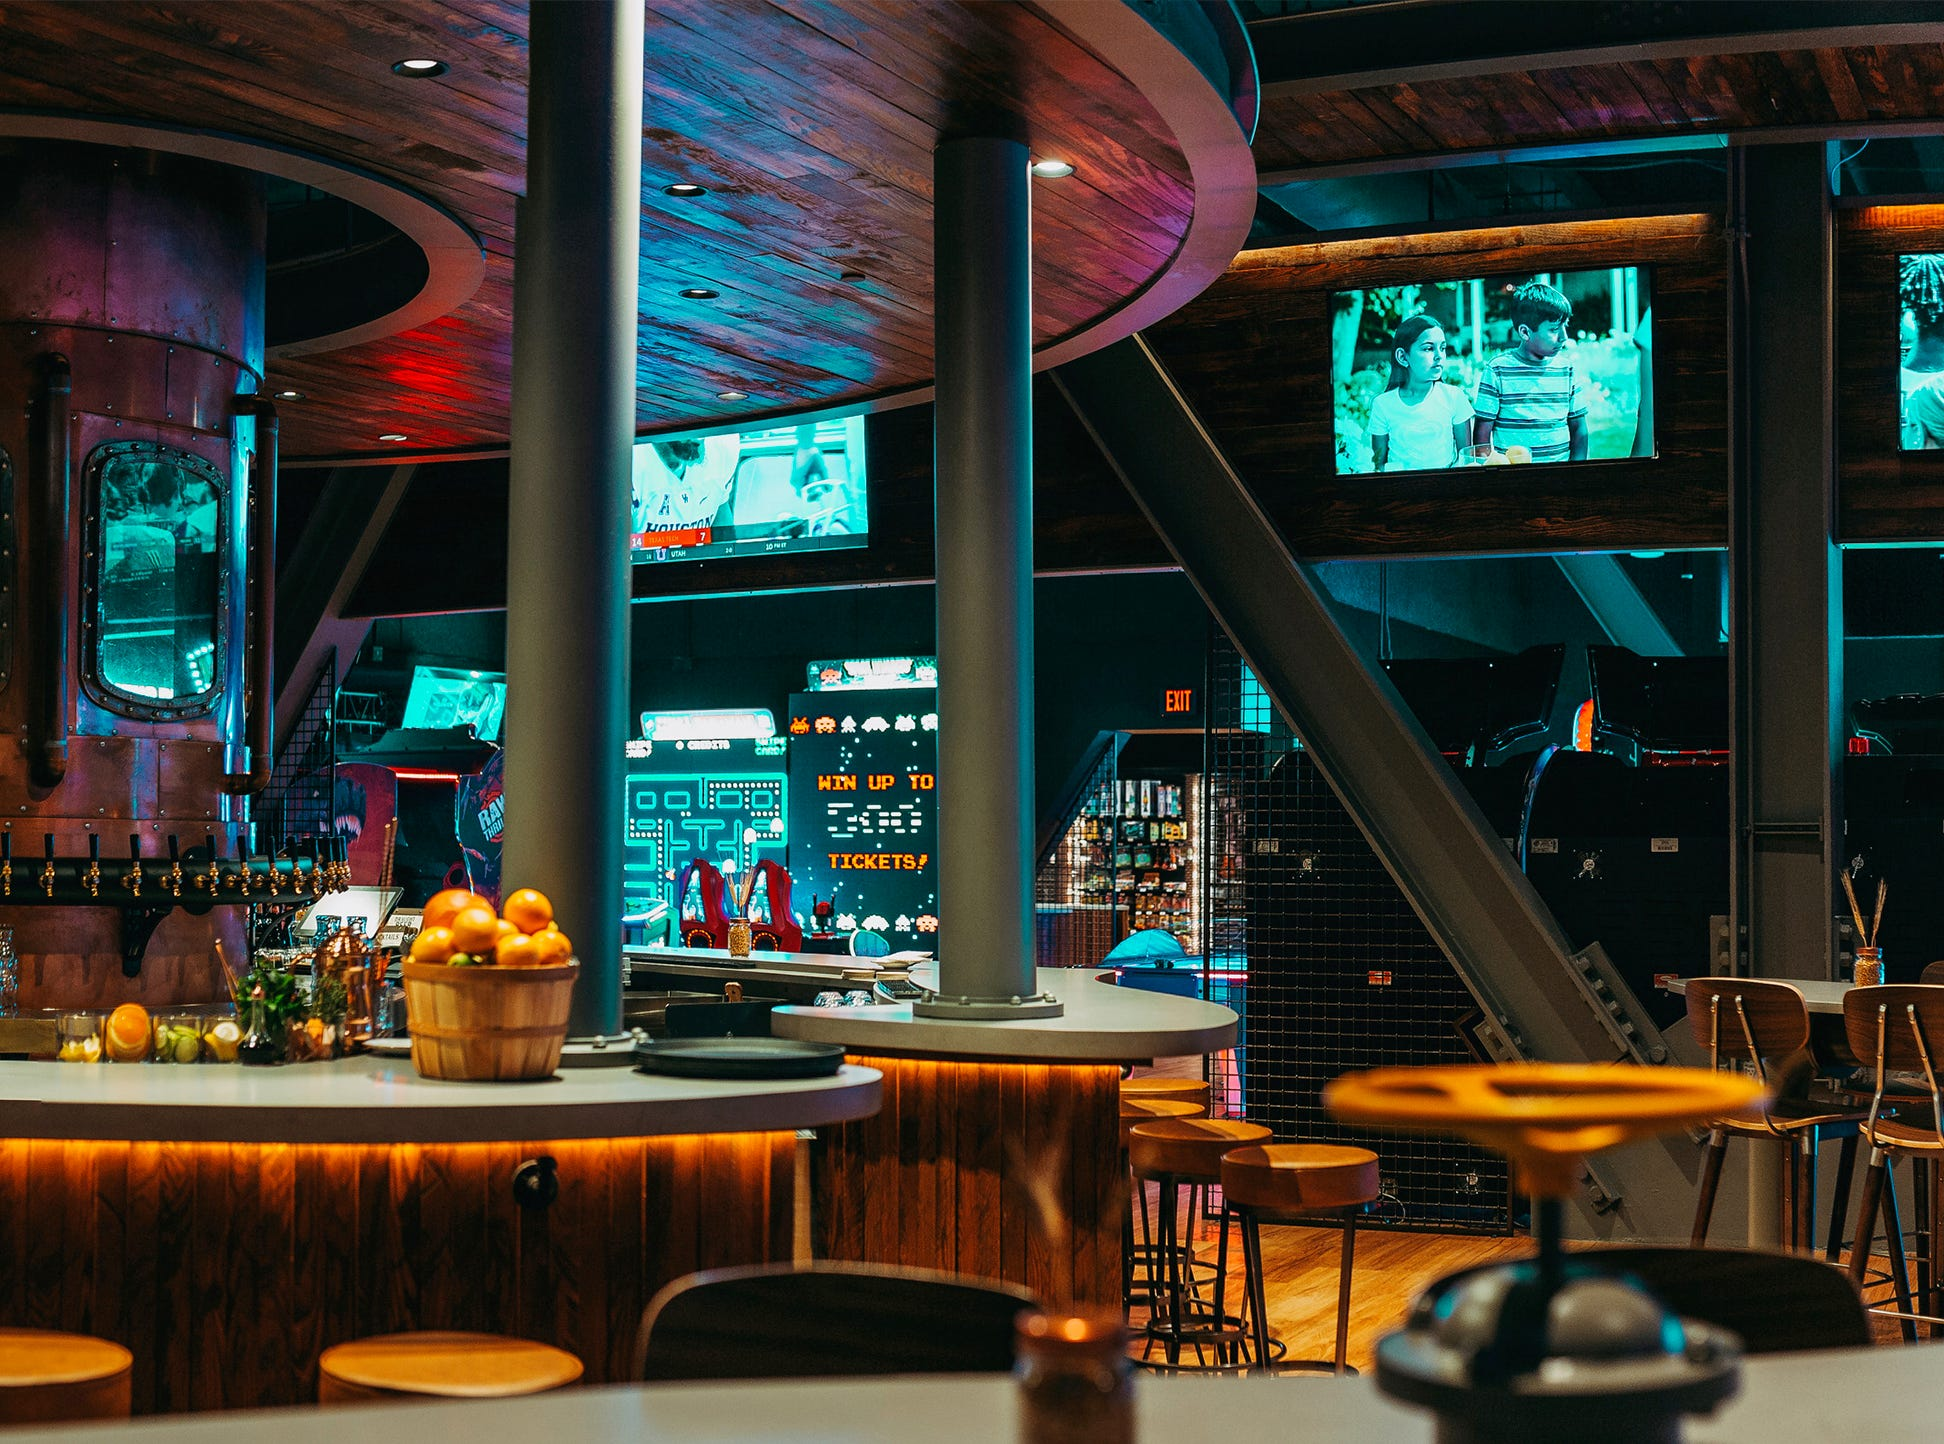 The new 10K Alley gastropub opened in September 2018 at the JW Marriott Marco Island Beach Resort.